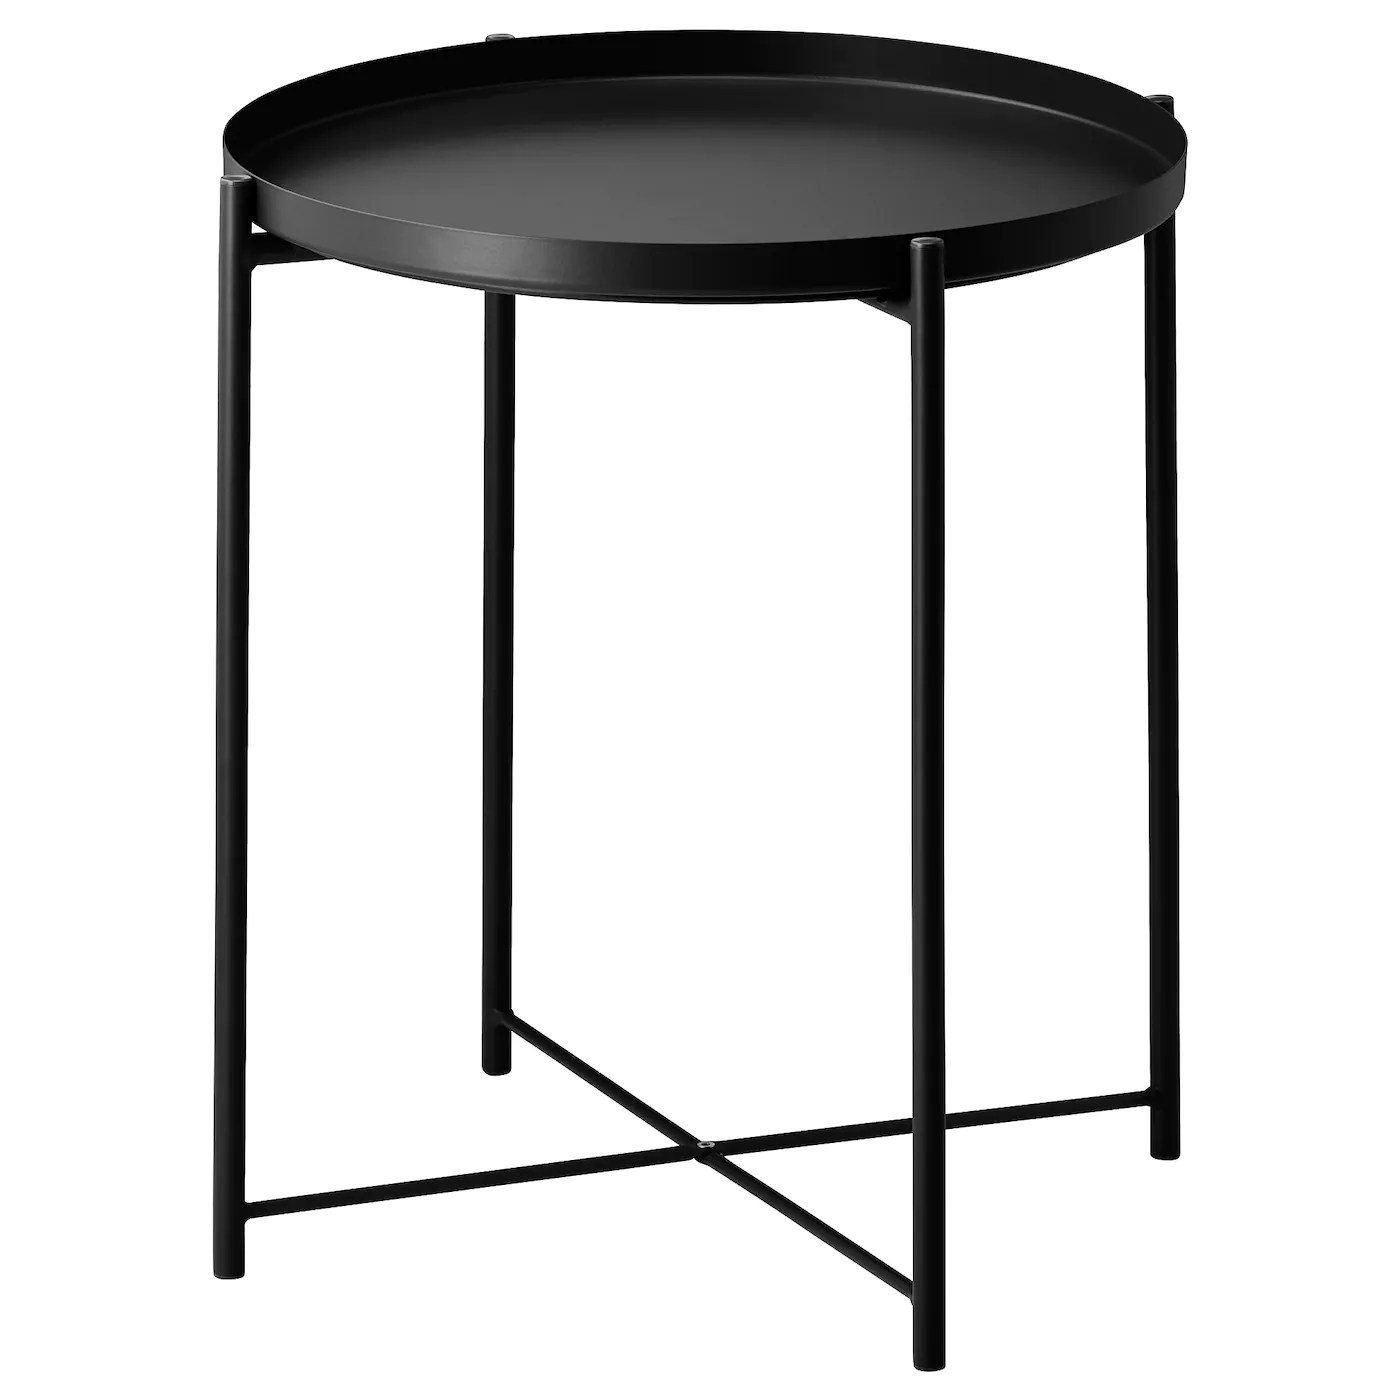 Ikea Gladom Side table